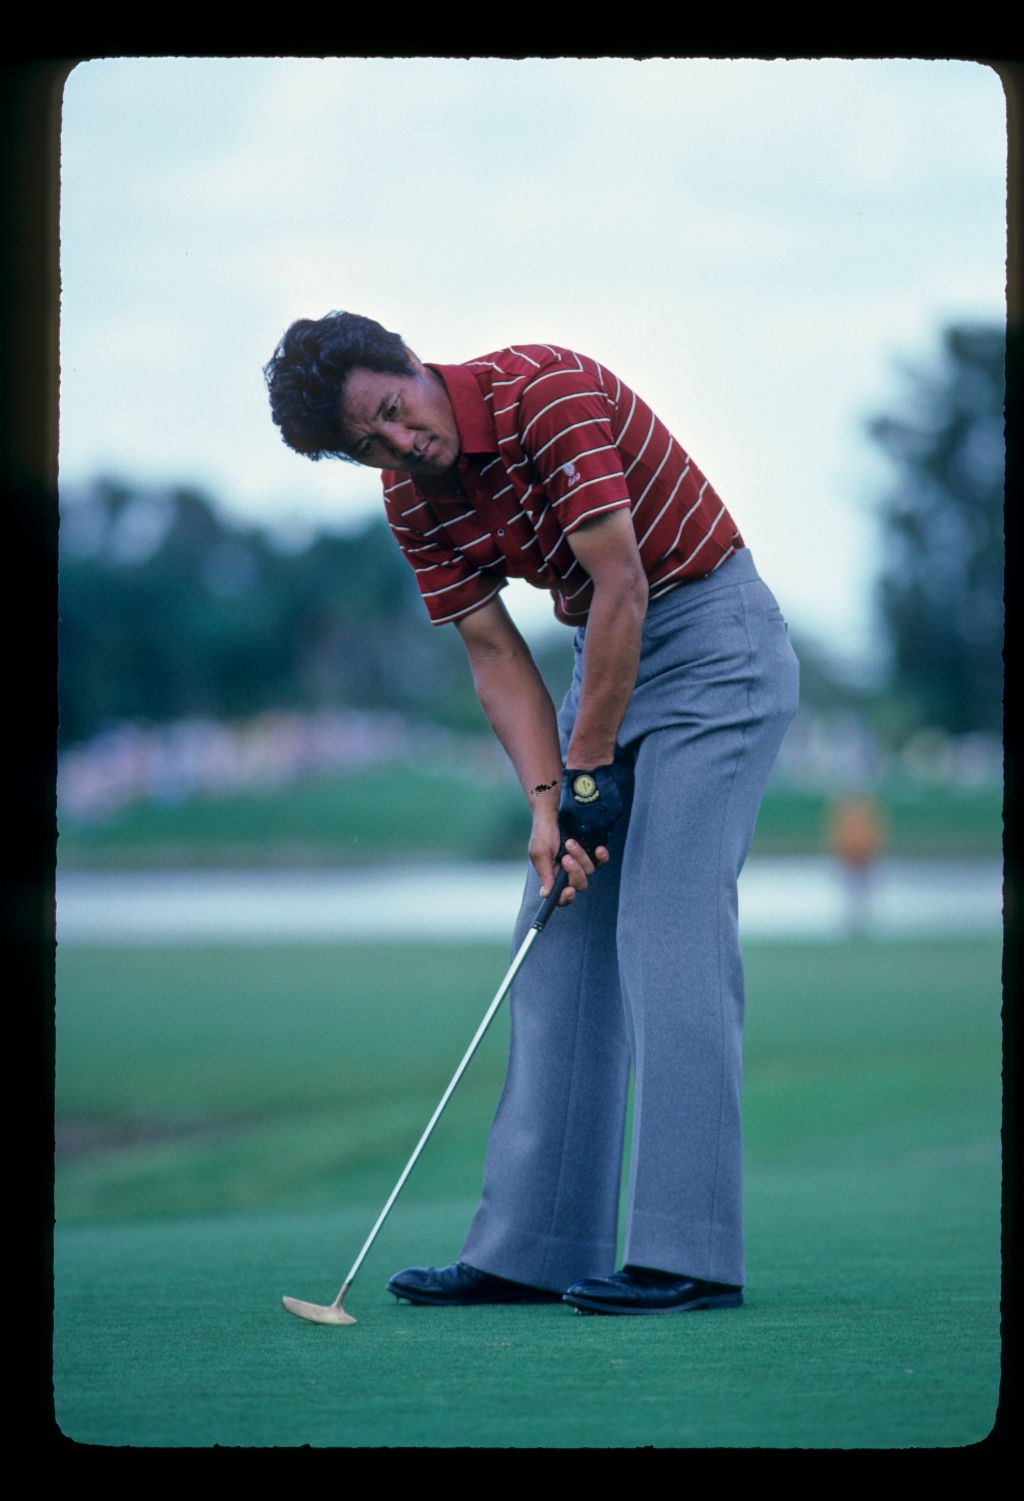 Isao Aoki staring accusingly at a putt during the 1982 Doral Eastern Open